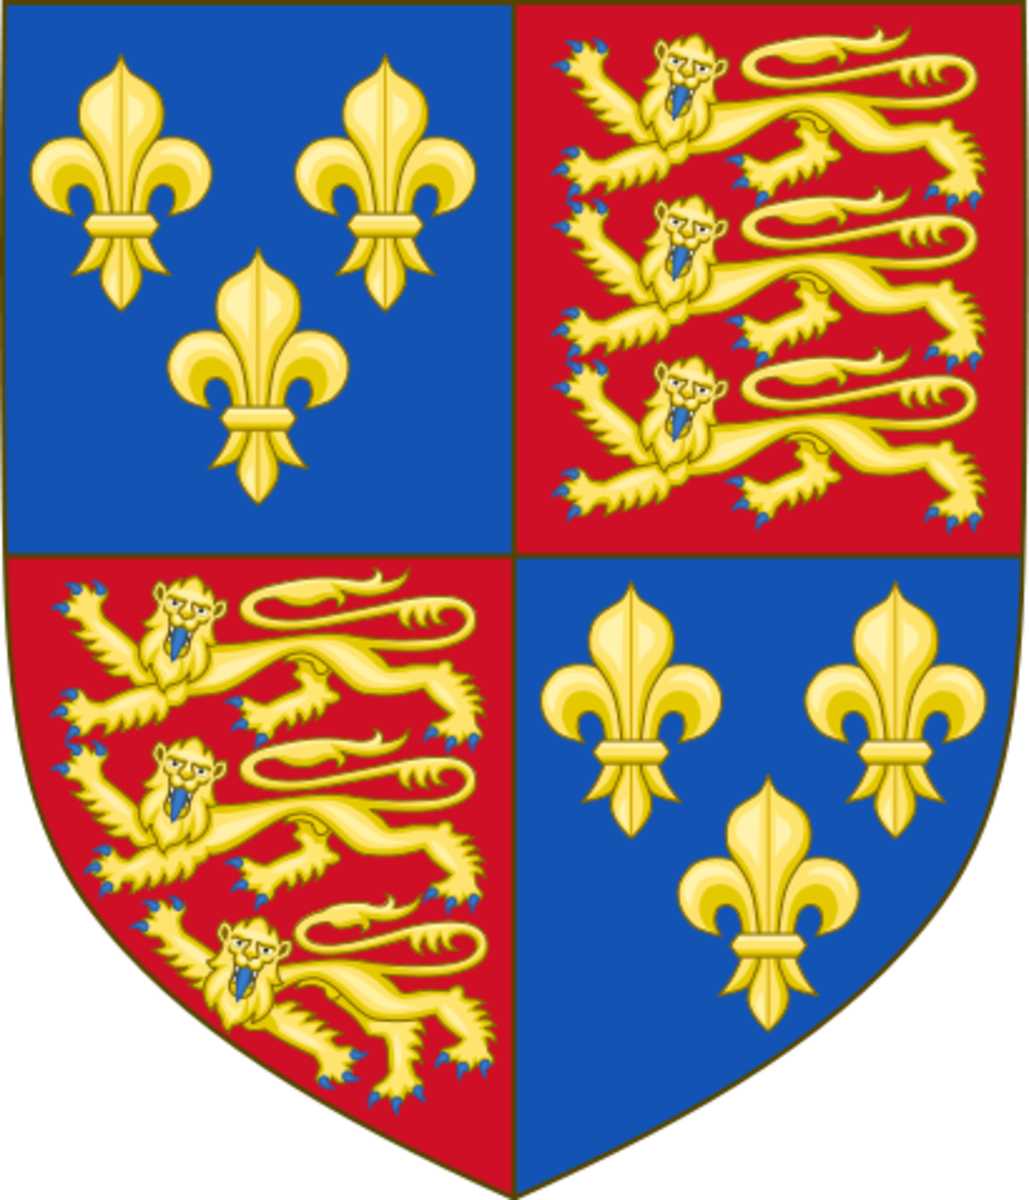 Royal Arms of the House of York 199-1603